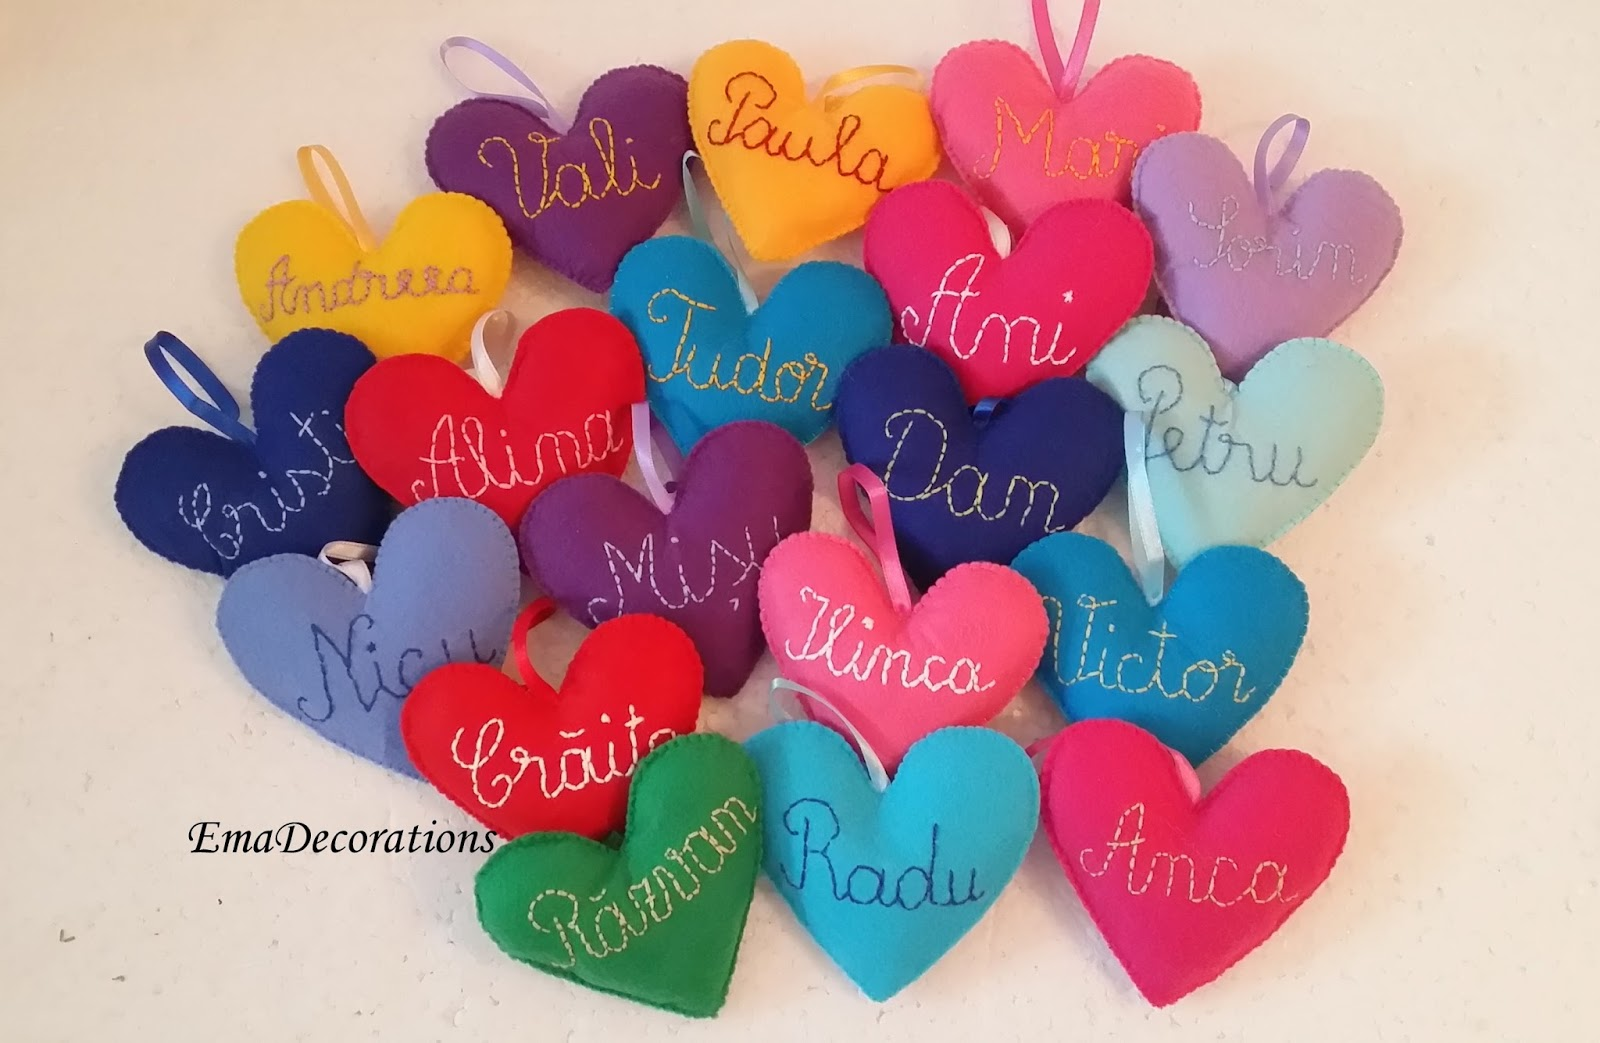 Personalized name ornaments - Personalized Name Heart Ornament These Hearts Are Made As Christmas Ornaments But I Think They Could Be Used For Valentines Too I Made Them From Colorful